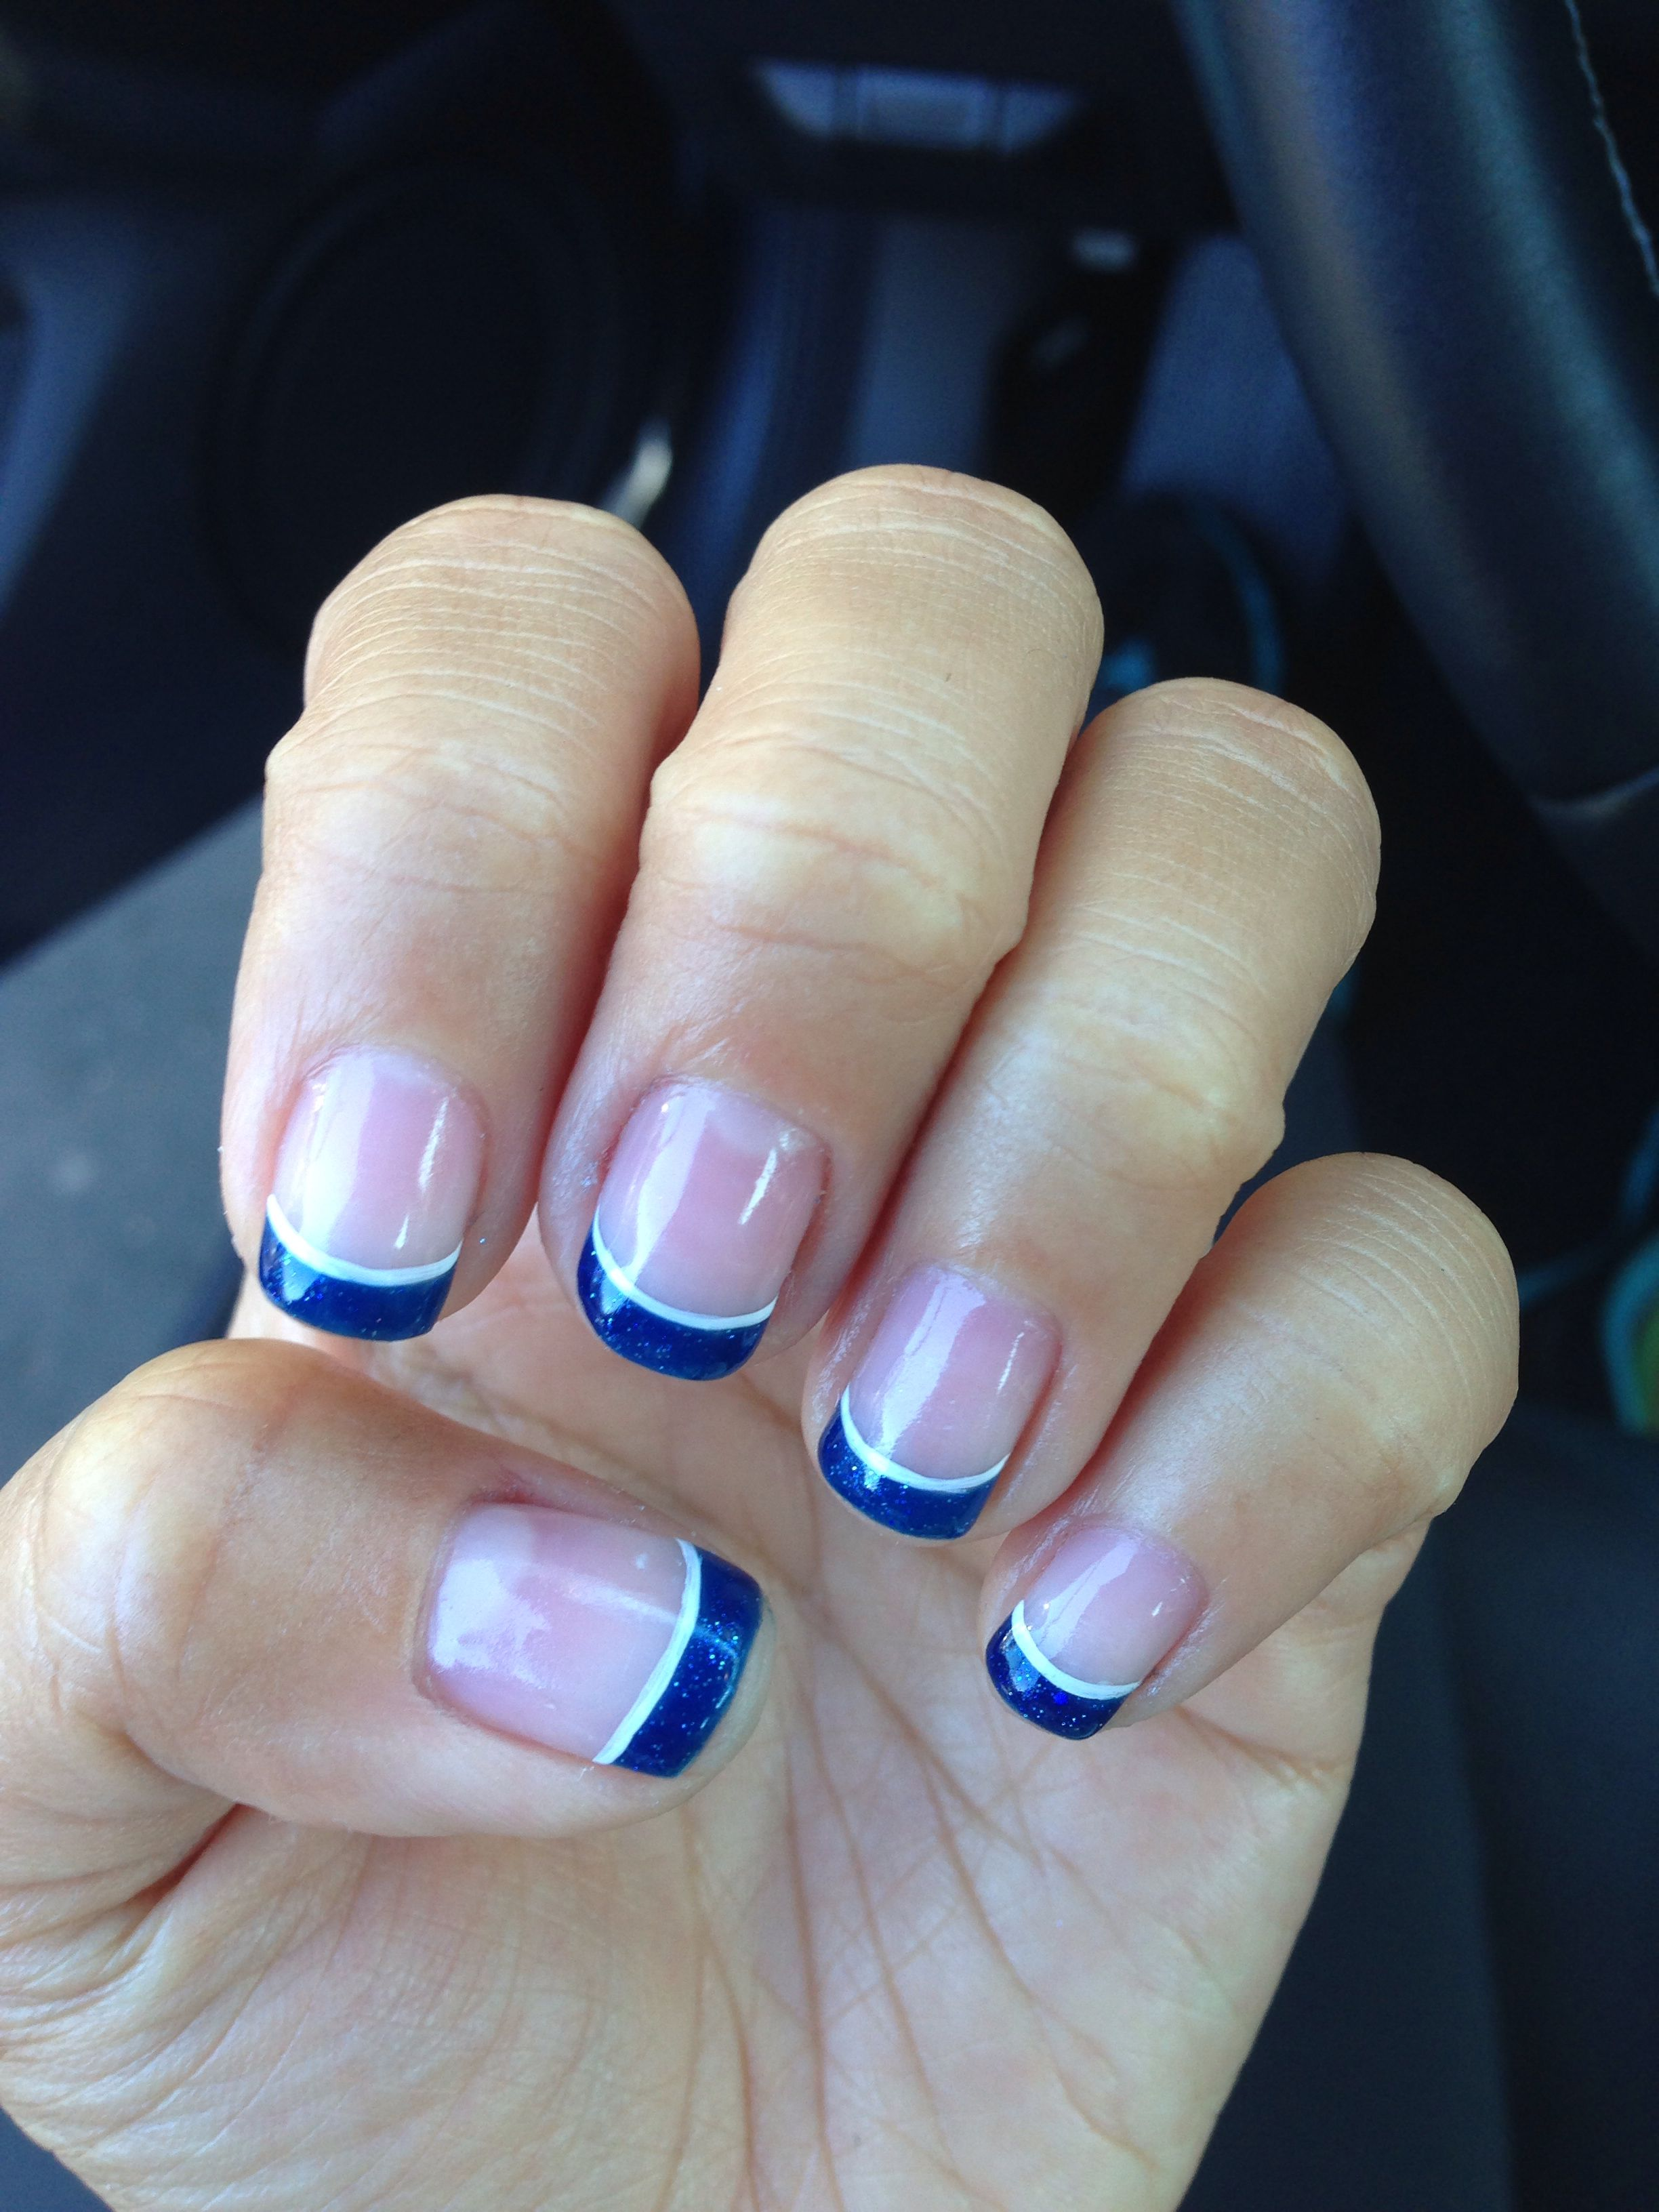 Glittery blue french tip gel nails | Deb\'s nails | Pinterest | Mani ...